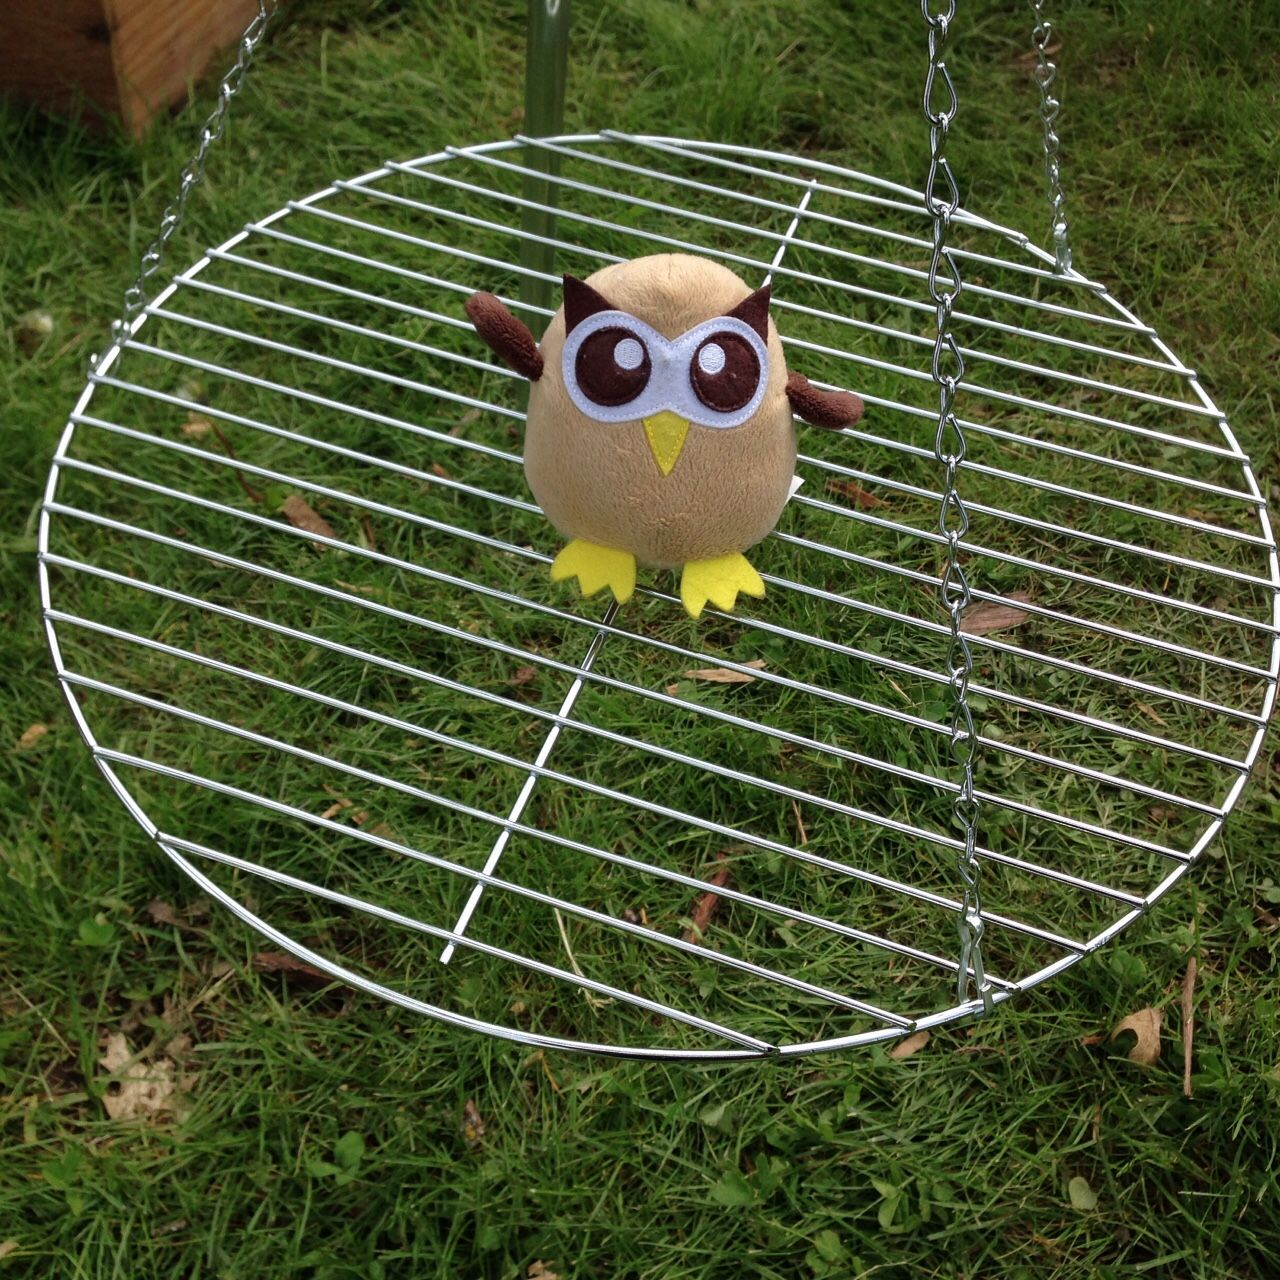 It's not a swing, Owly. Day 131 of ‪#‎yearofowly‬ ‪#‎lifeofowly‬